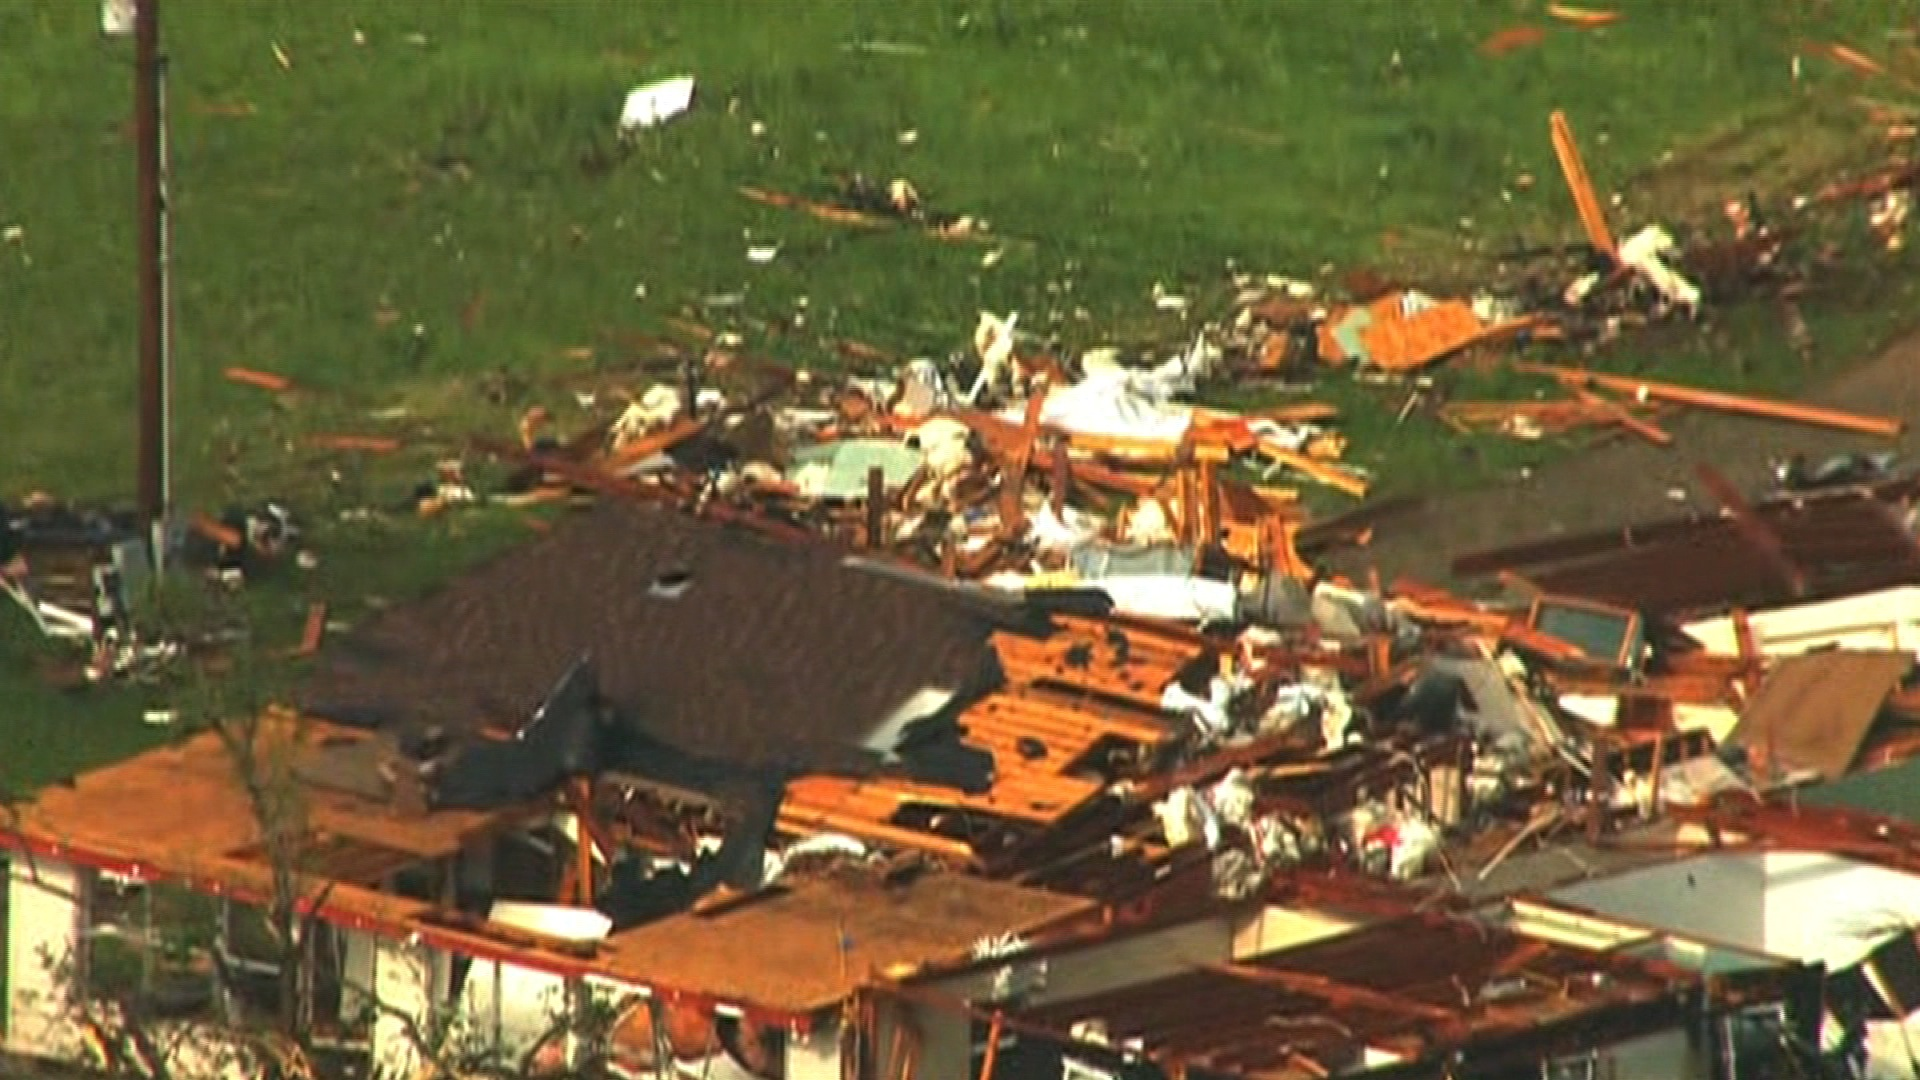 Tornadoes strike several states, devouring homes and killing 1 man